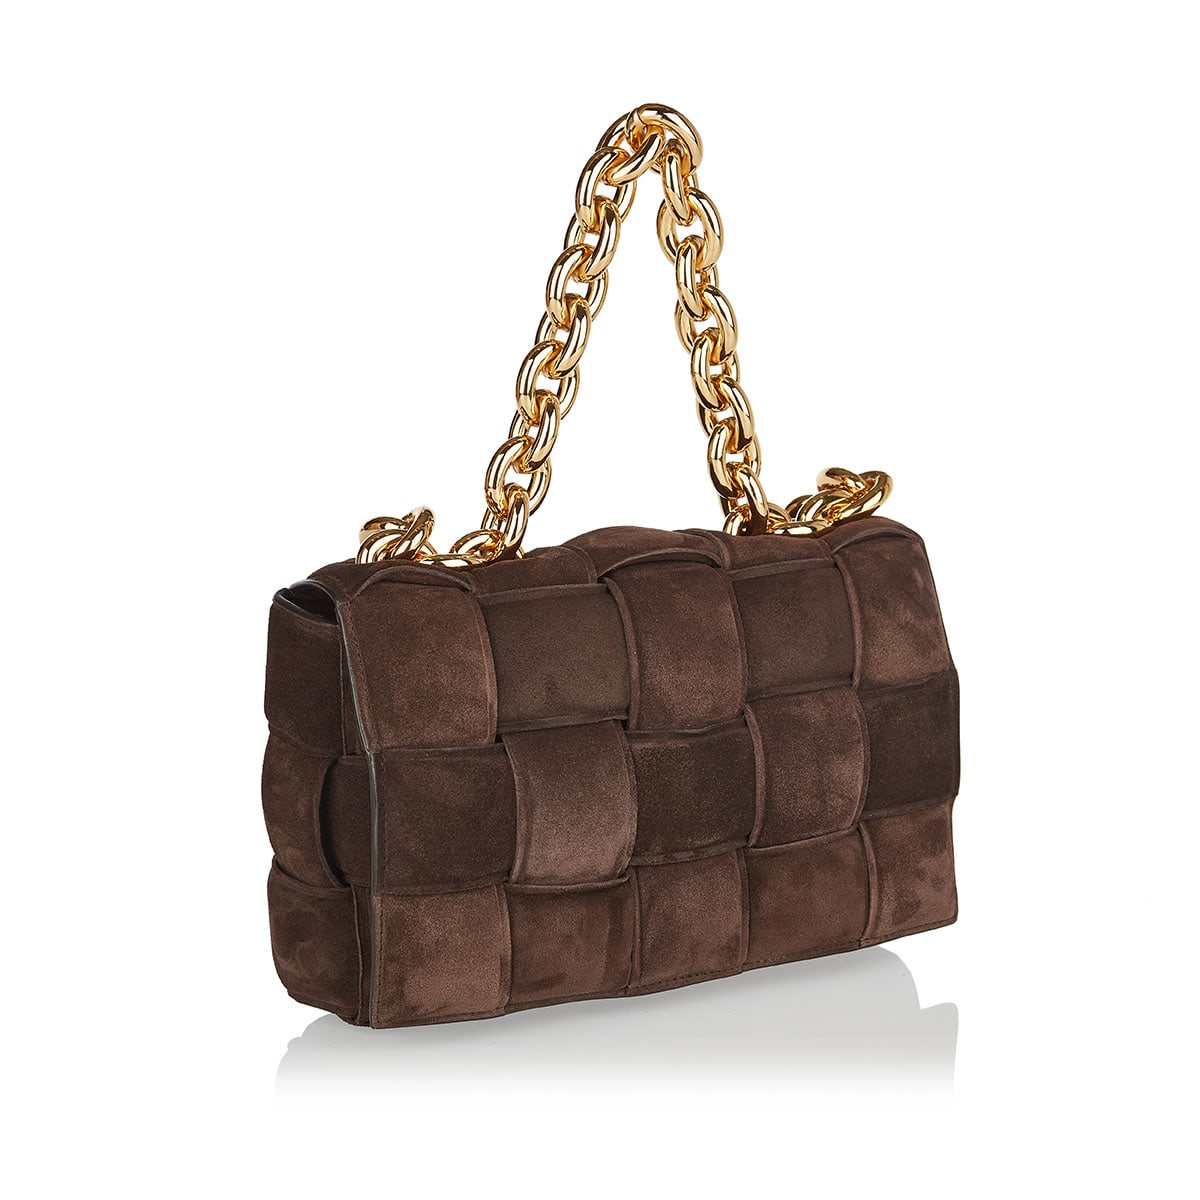 The Chain Cassette suede bag